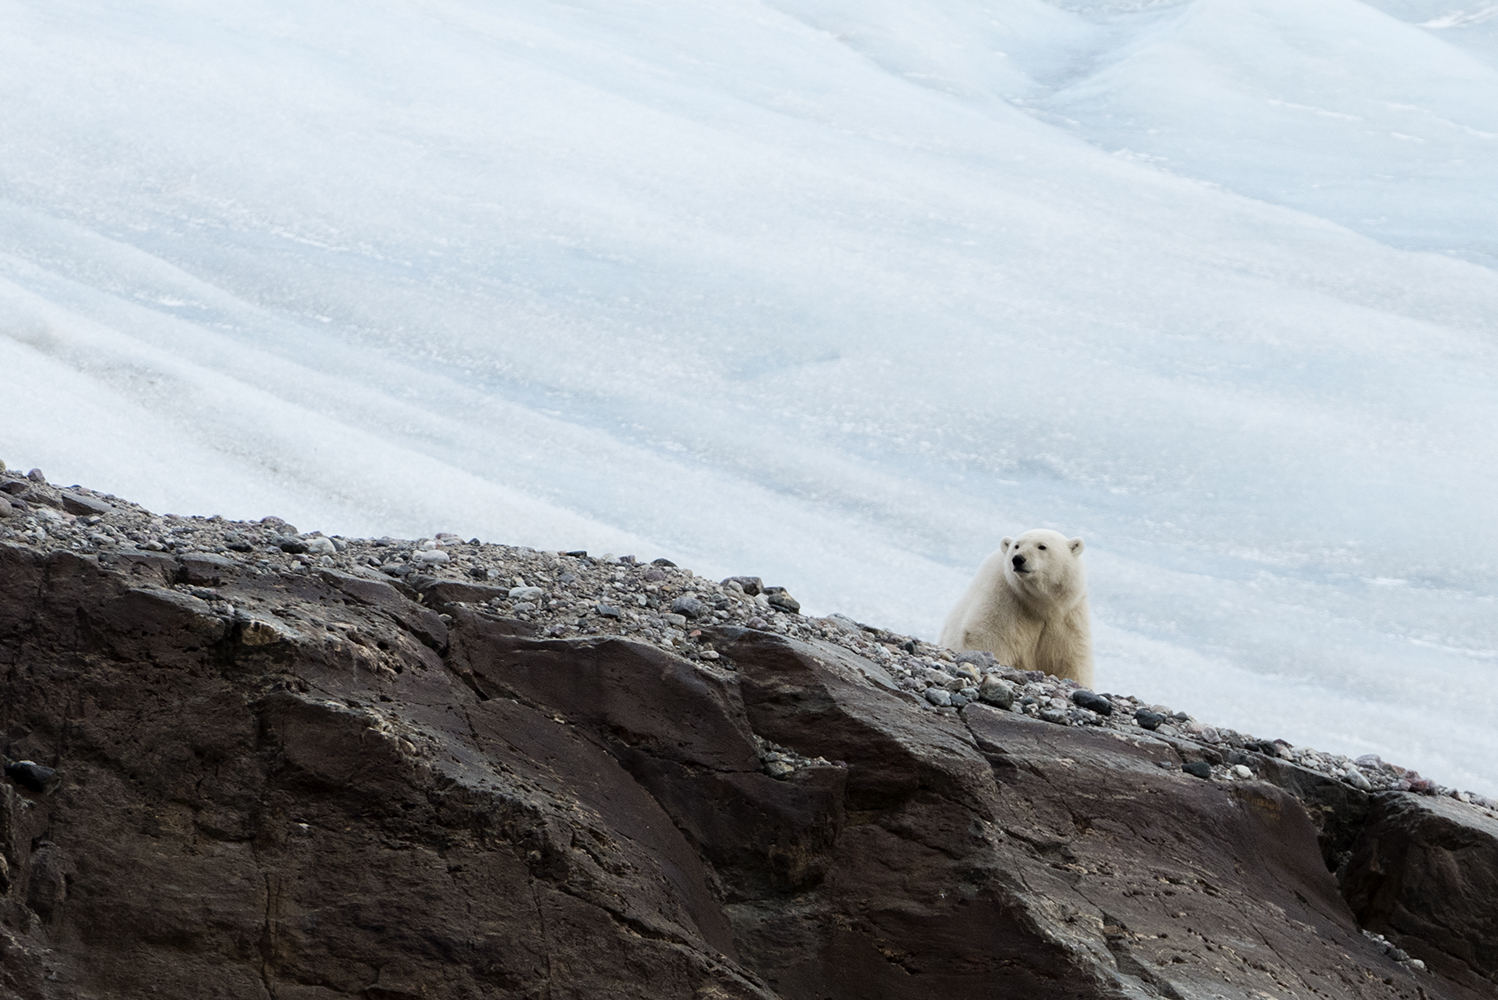 18/9 2014, Svalbard, Norway. Polar bear at the retreating high Arctic glacier Nordenskioldbreen, on Svalbard.